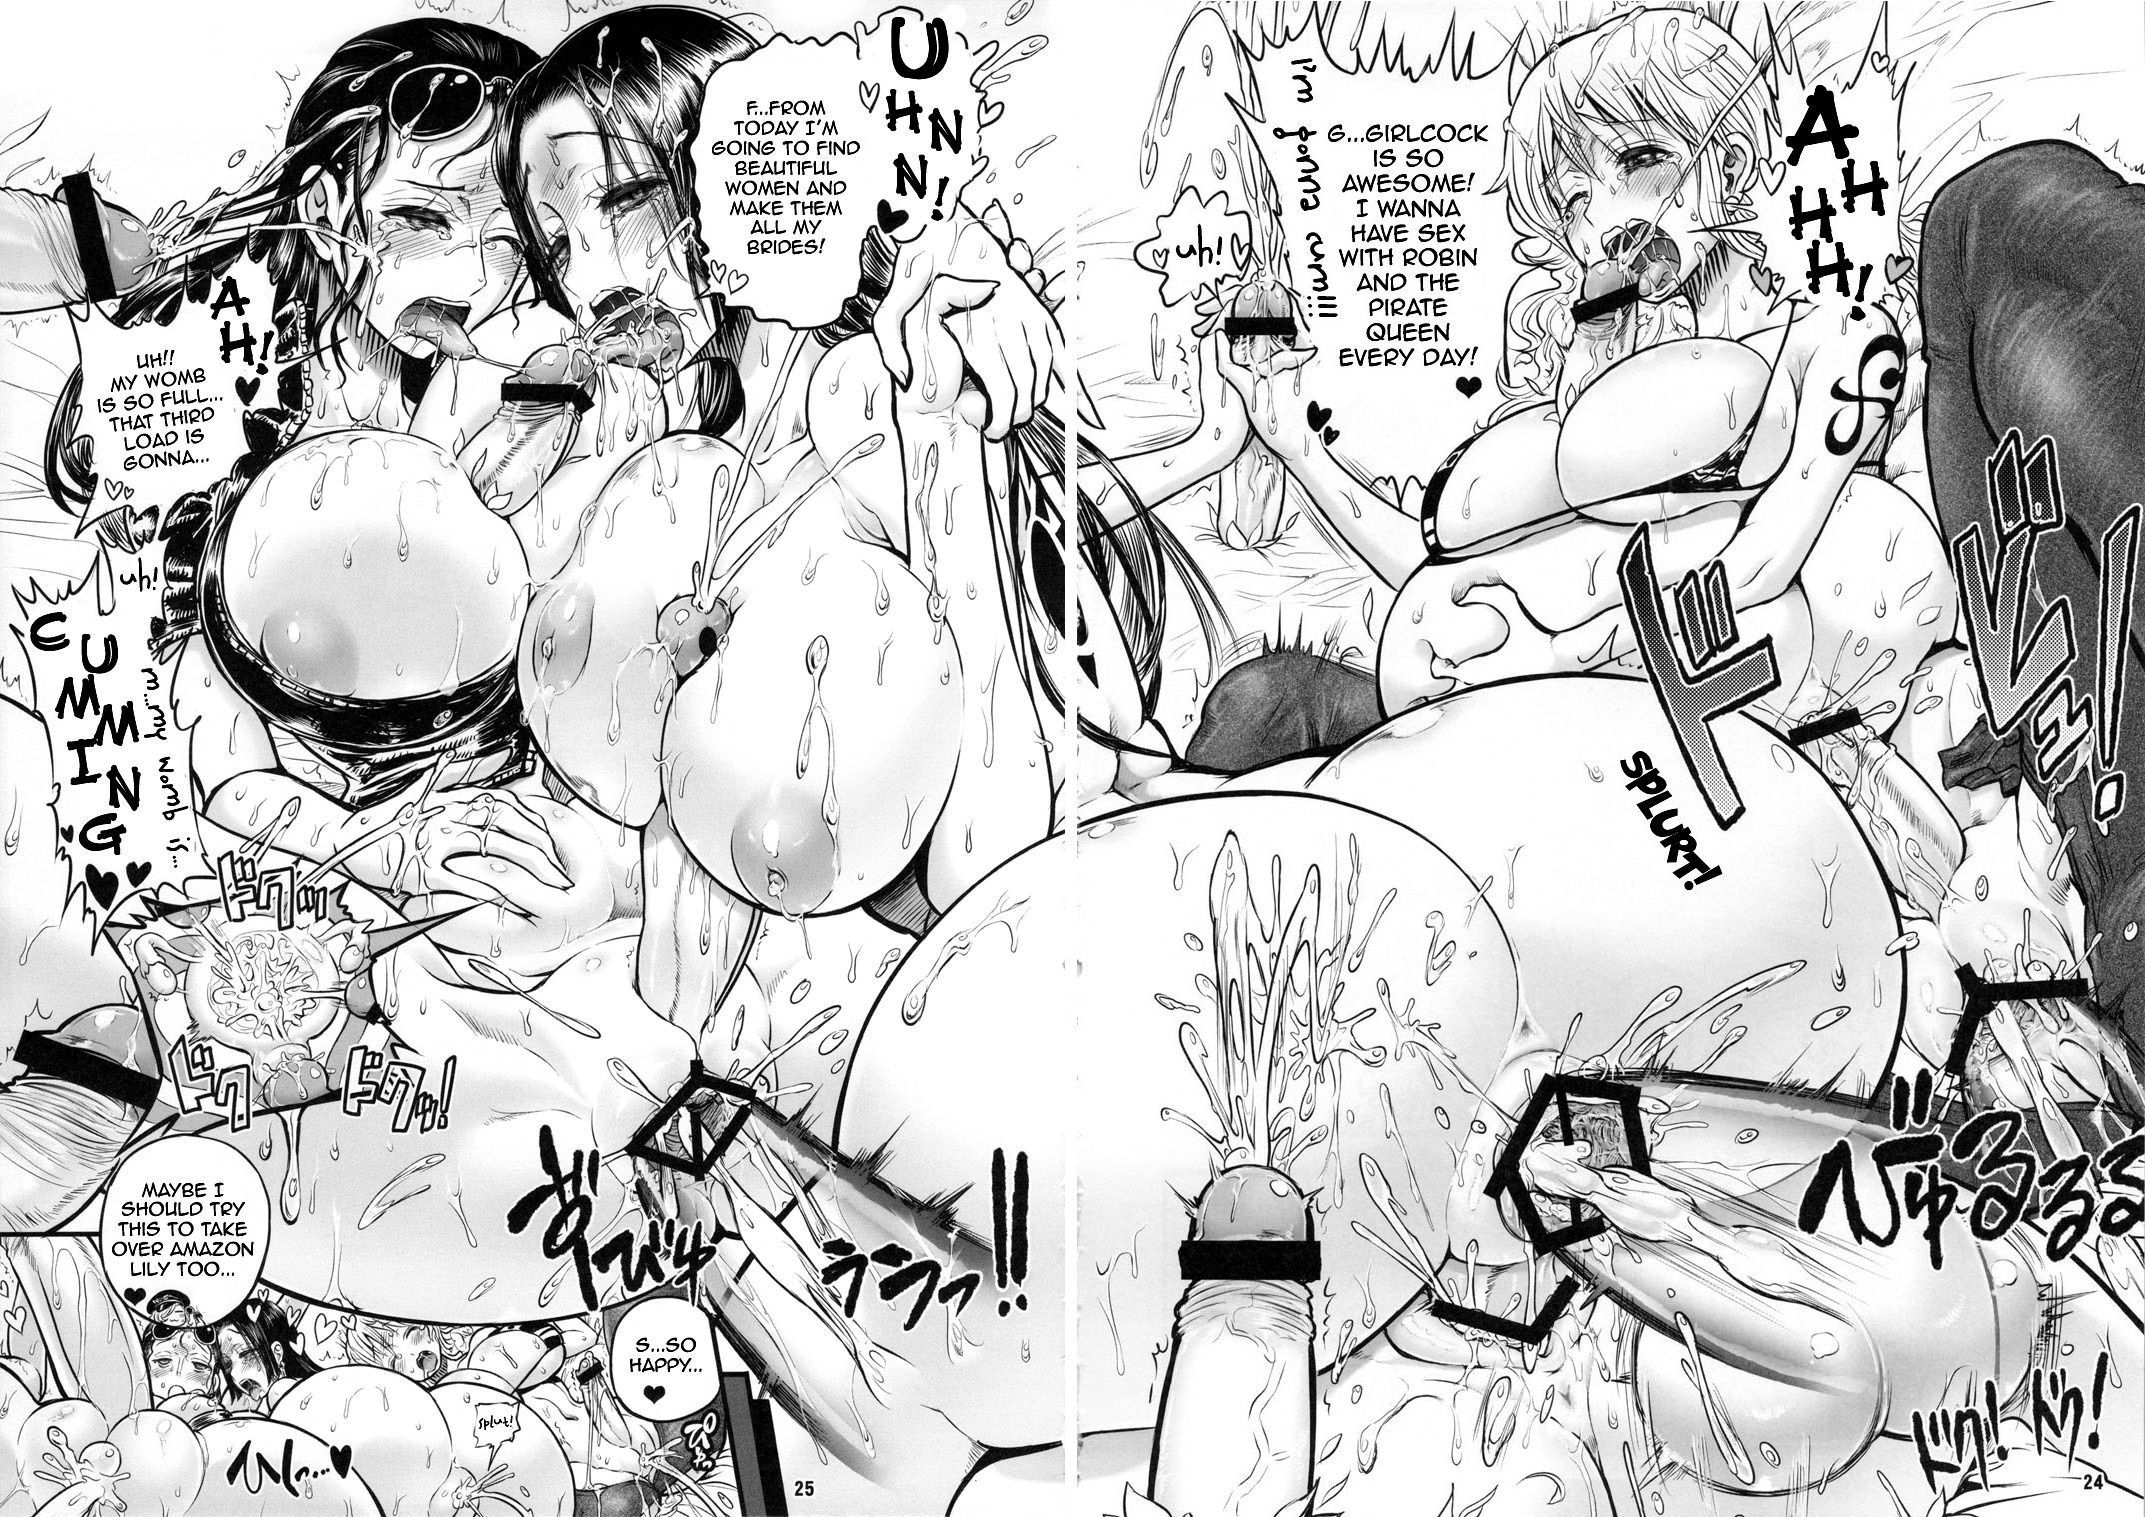 Bloom pirate hooker queen hentai manga picture 18